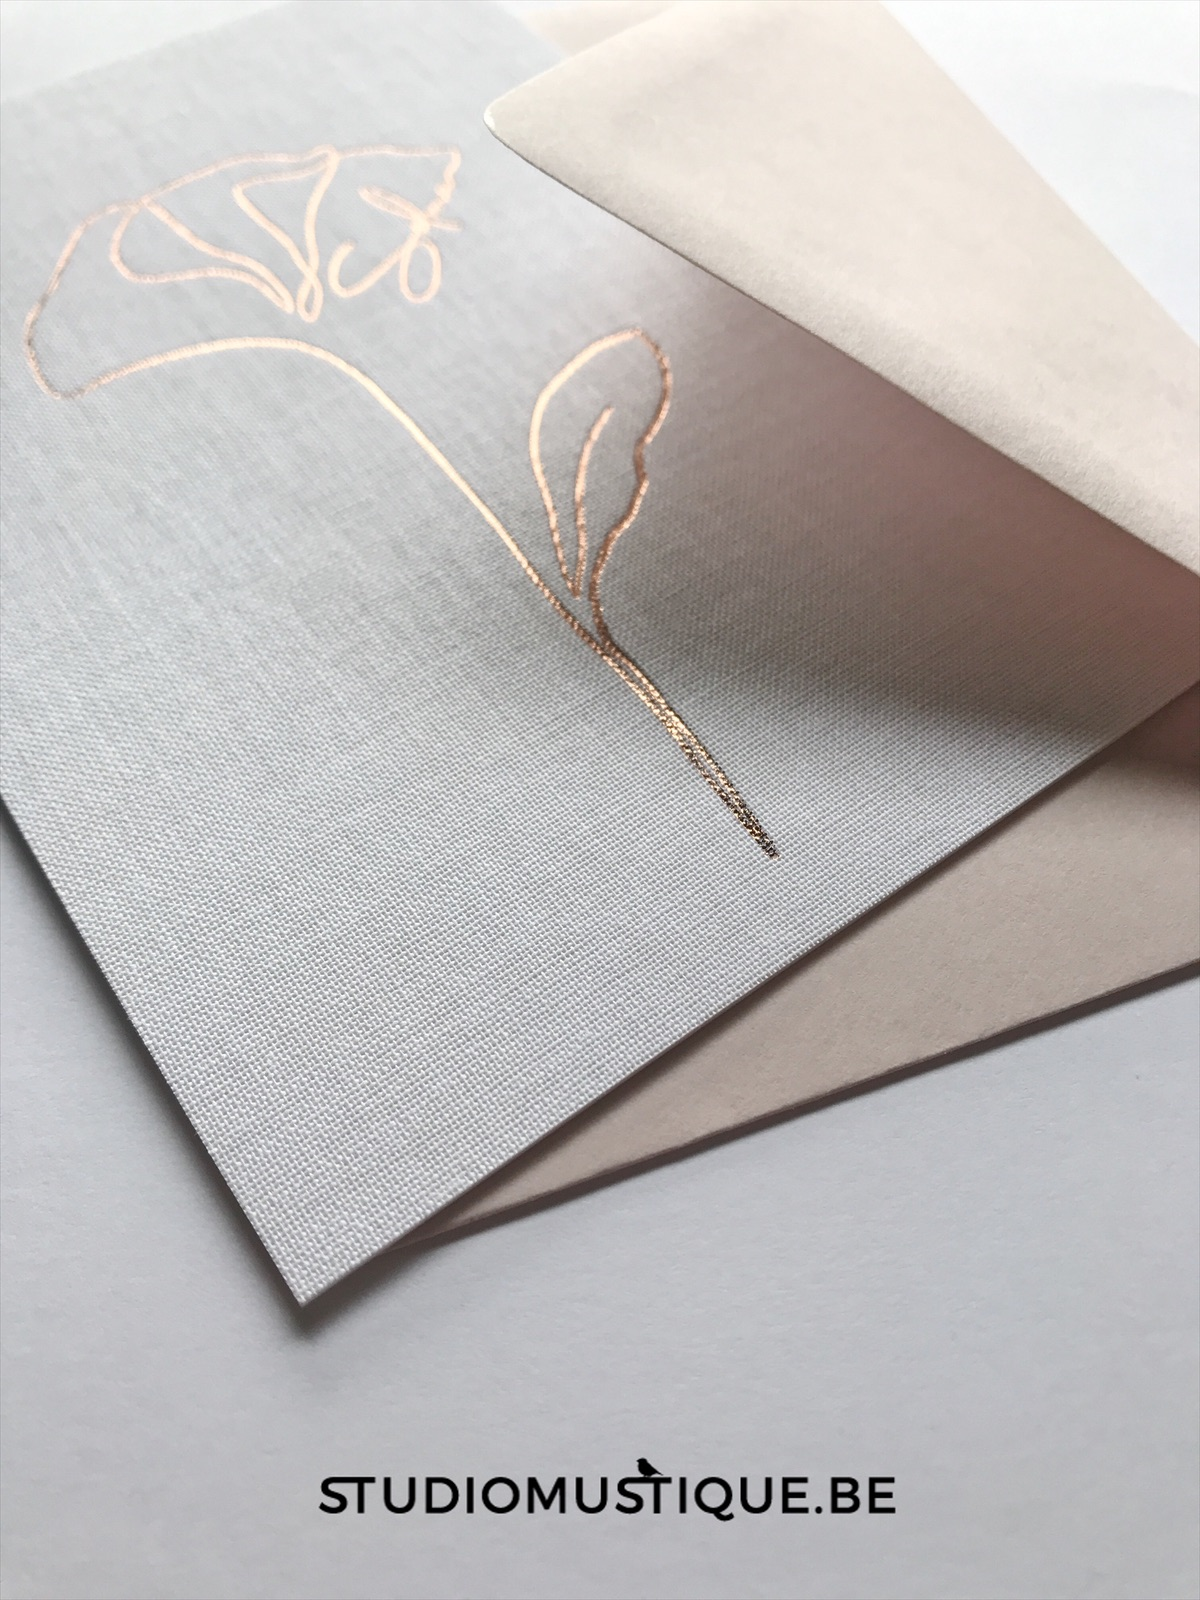 Geboortekaartje met stof - fabric birth announcement, foliedruk, rosegold, rose goud, letterpress